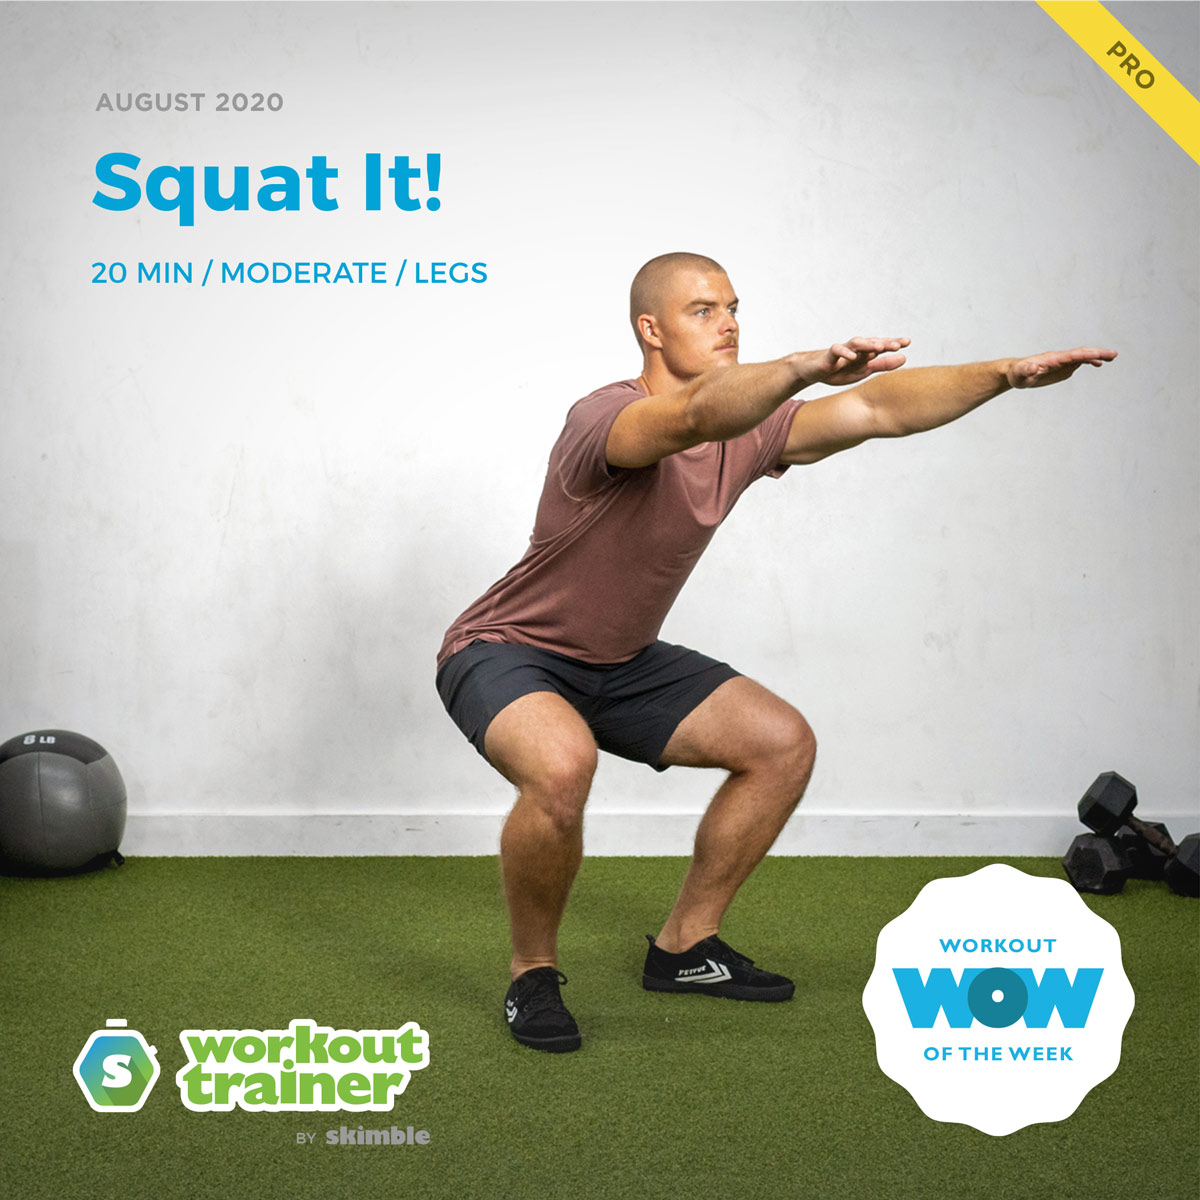 Male Trainer performing a Pulse Squat exercise